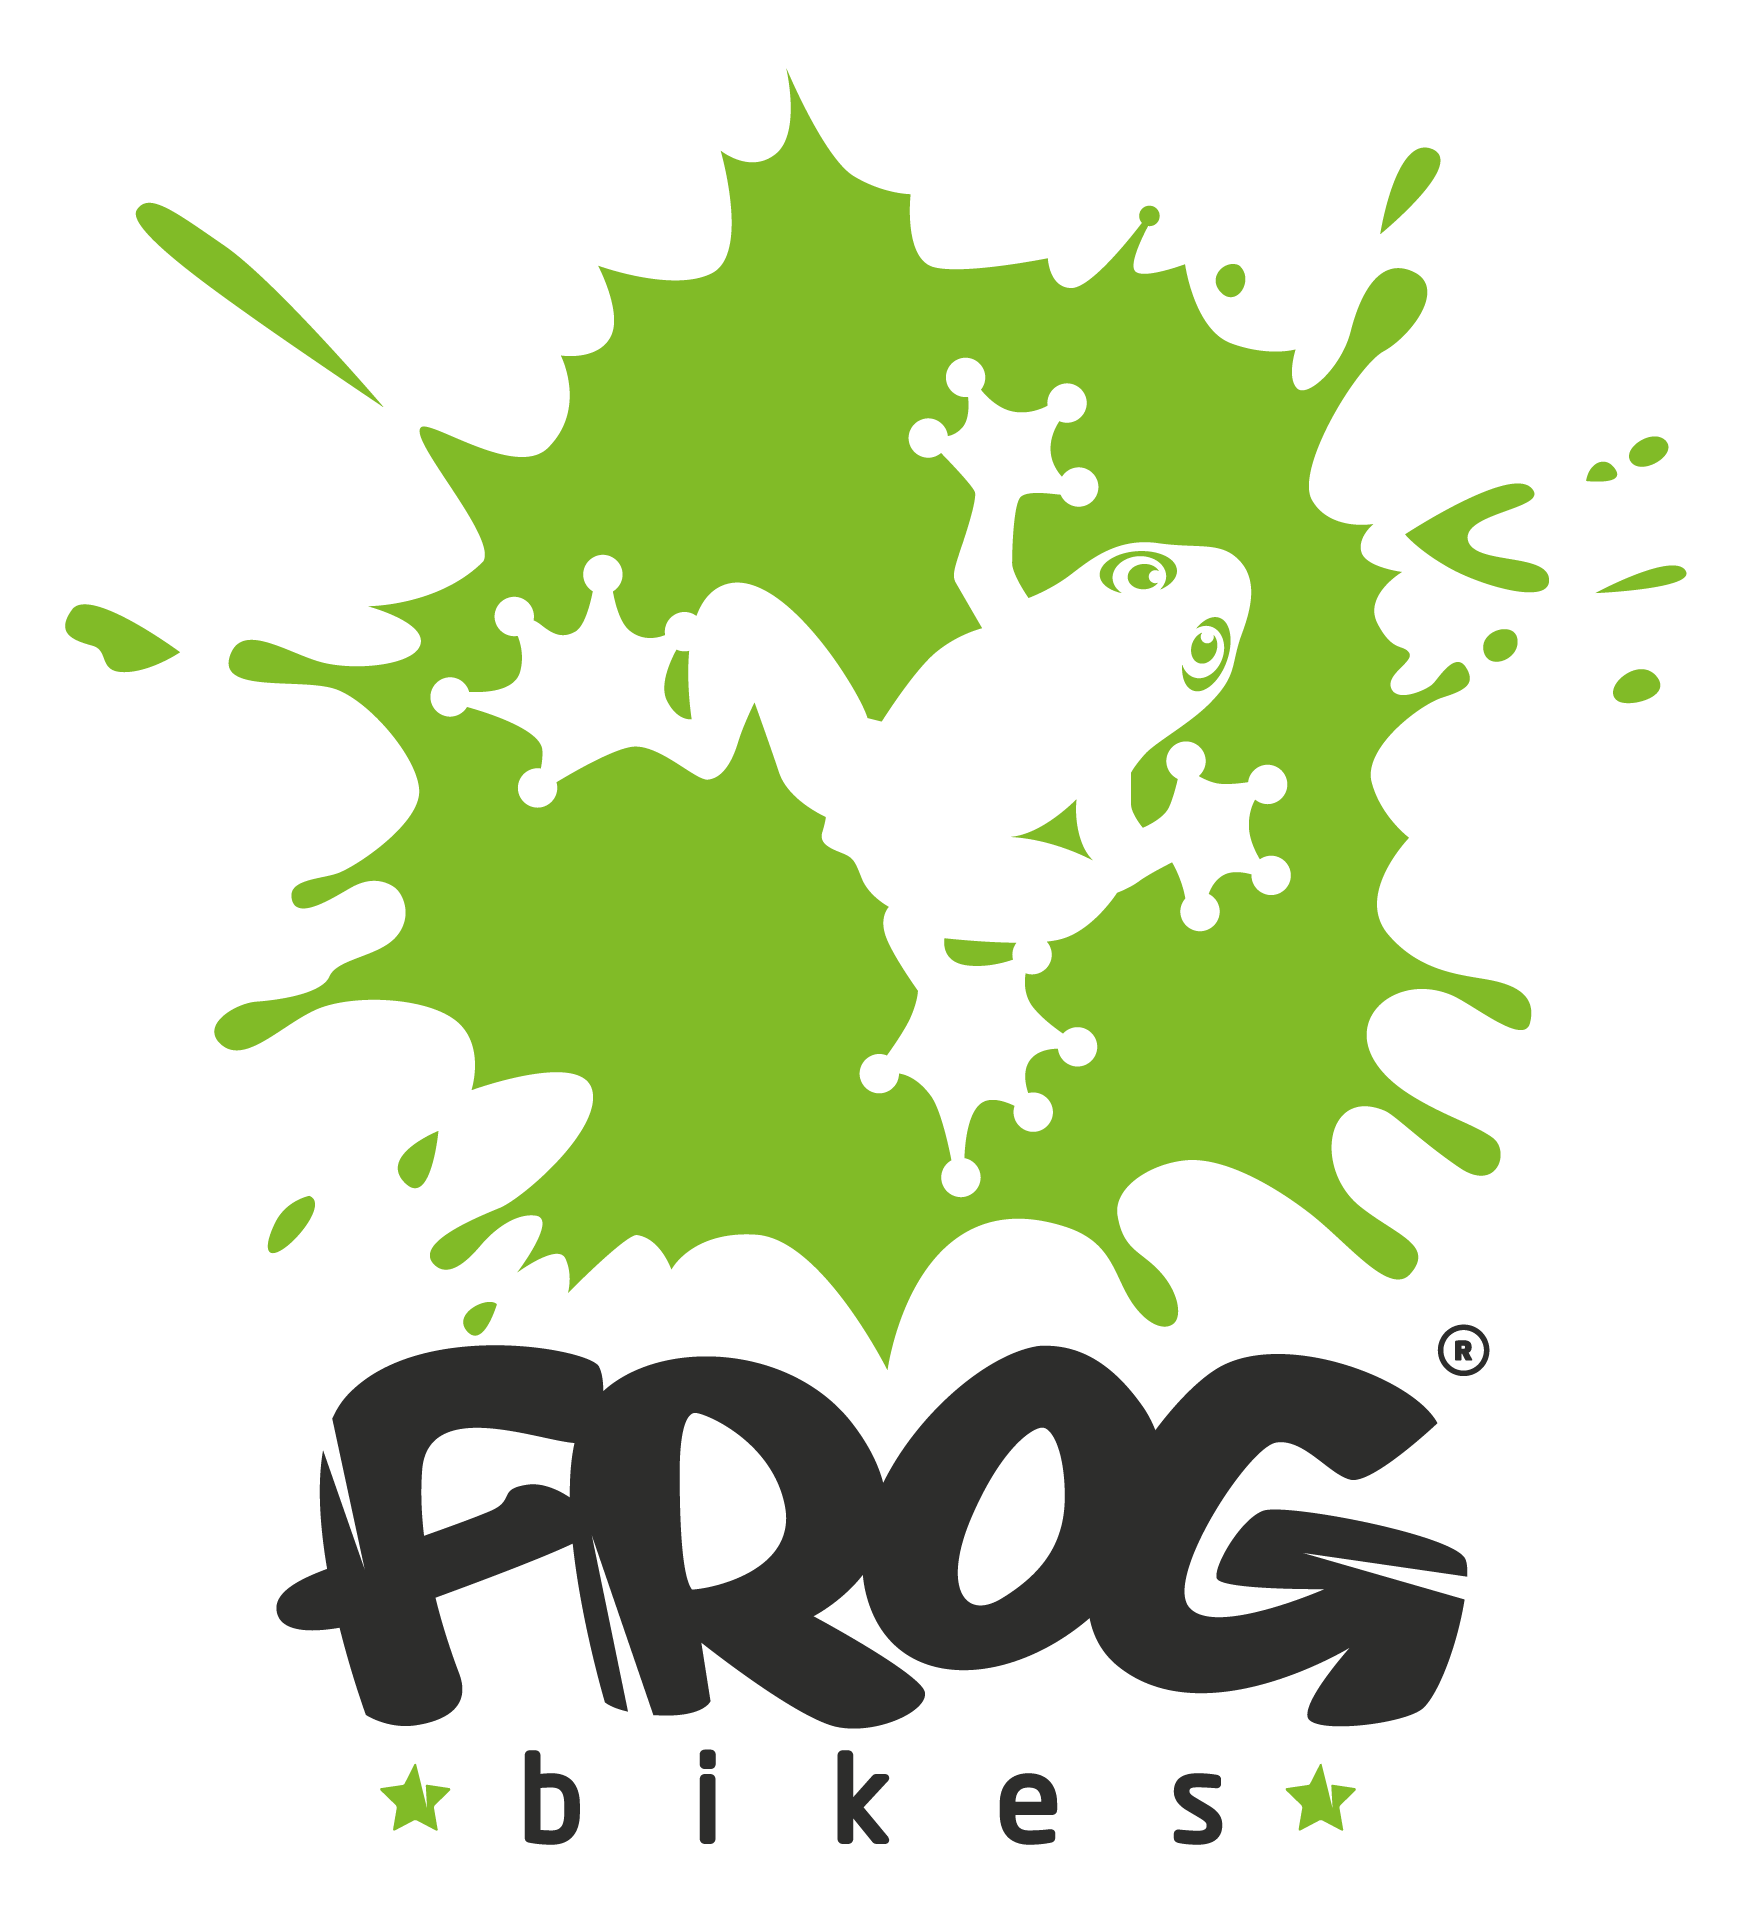 frogbikes